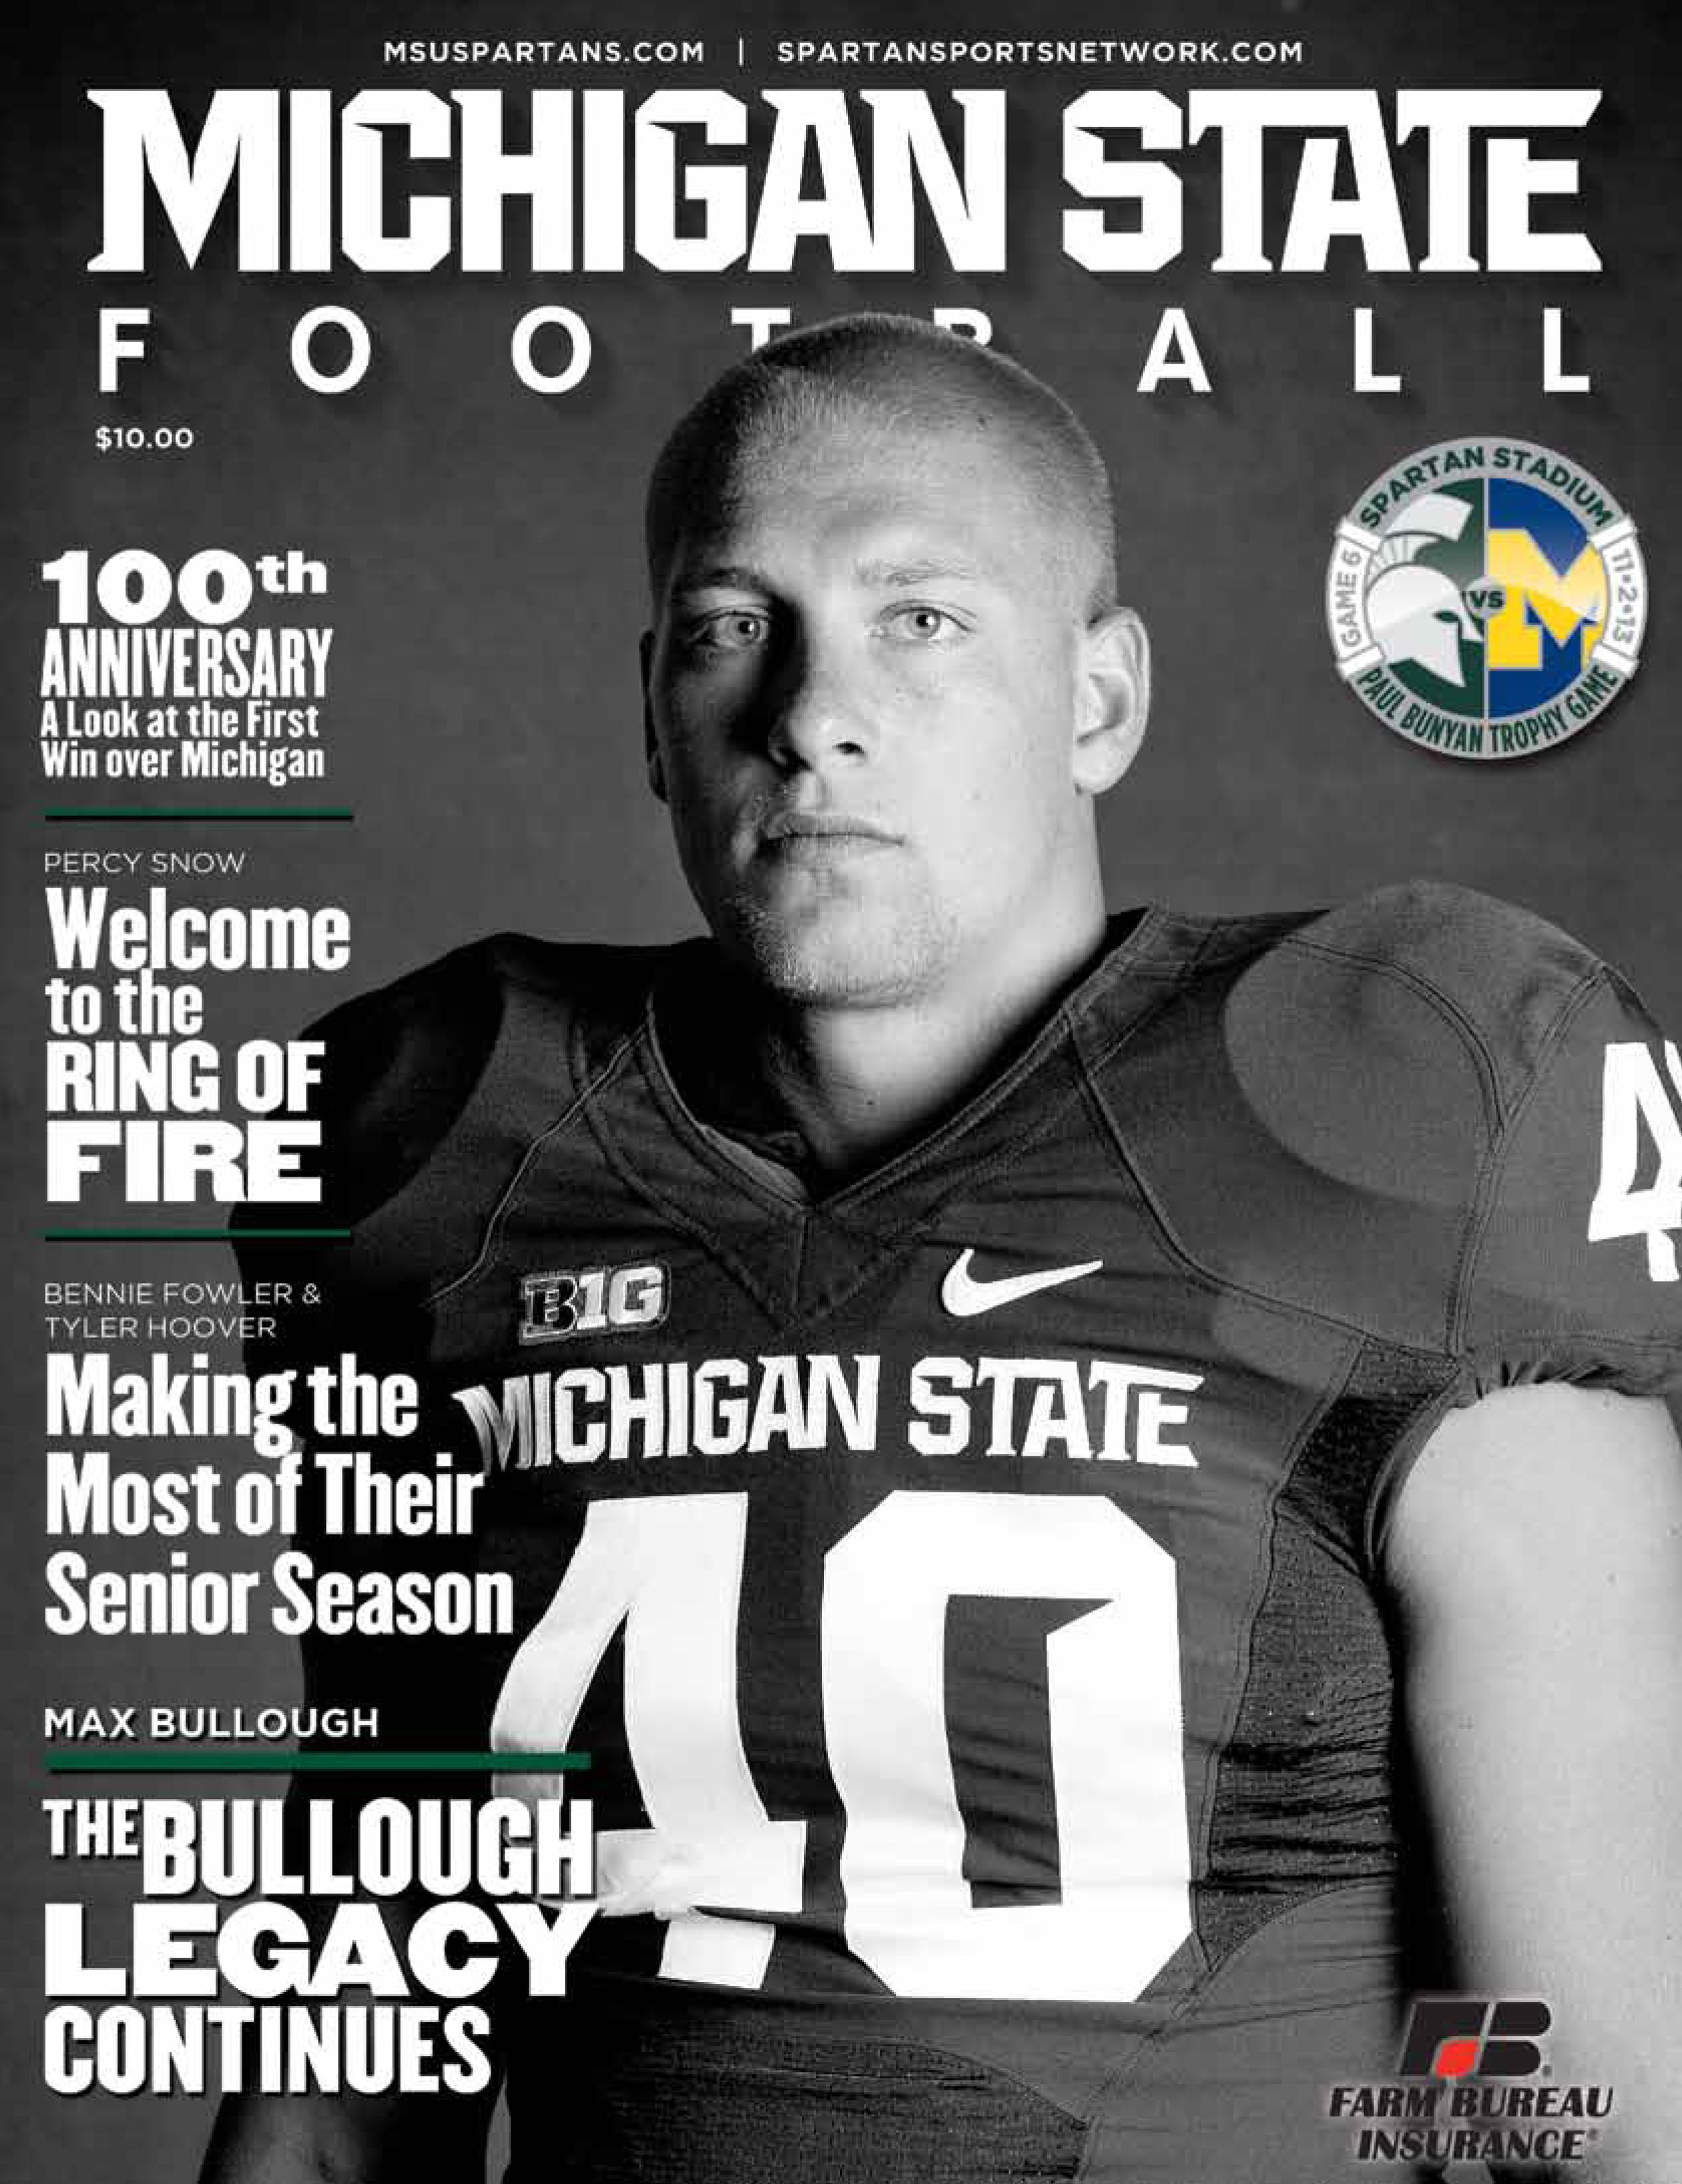 Football Game Day Program For Saturday S Game Vs Michigan Pick Up Your Program And Pi Michigan State Spartans Football Michigan State Football Michigan State